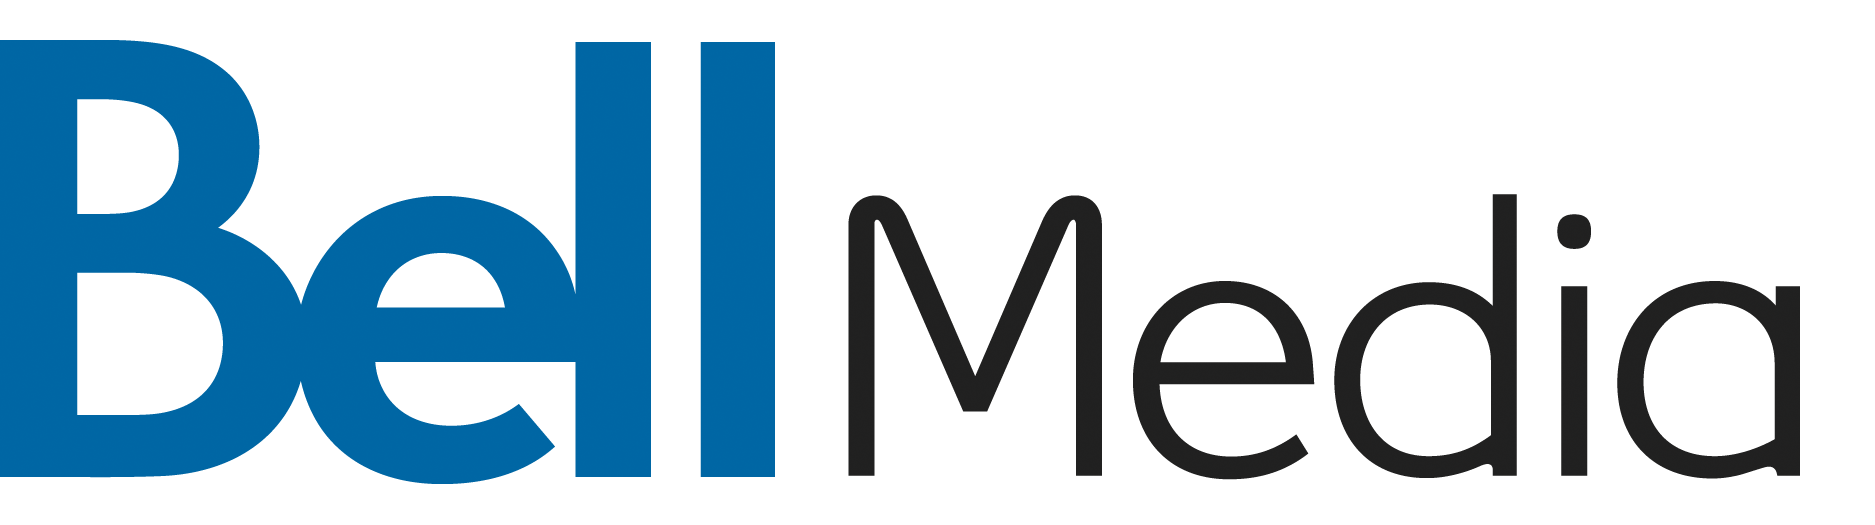 Bell-Media-Logo-Colour1.png